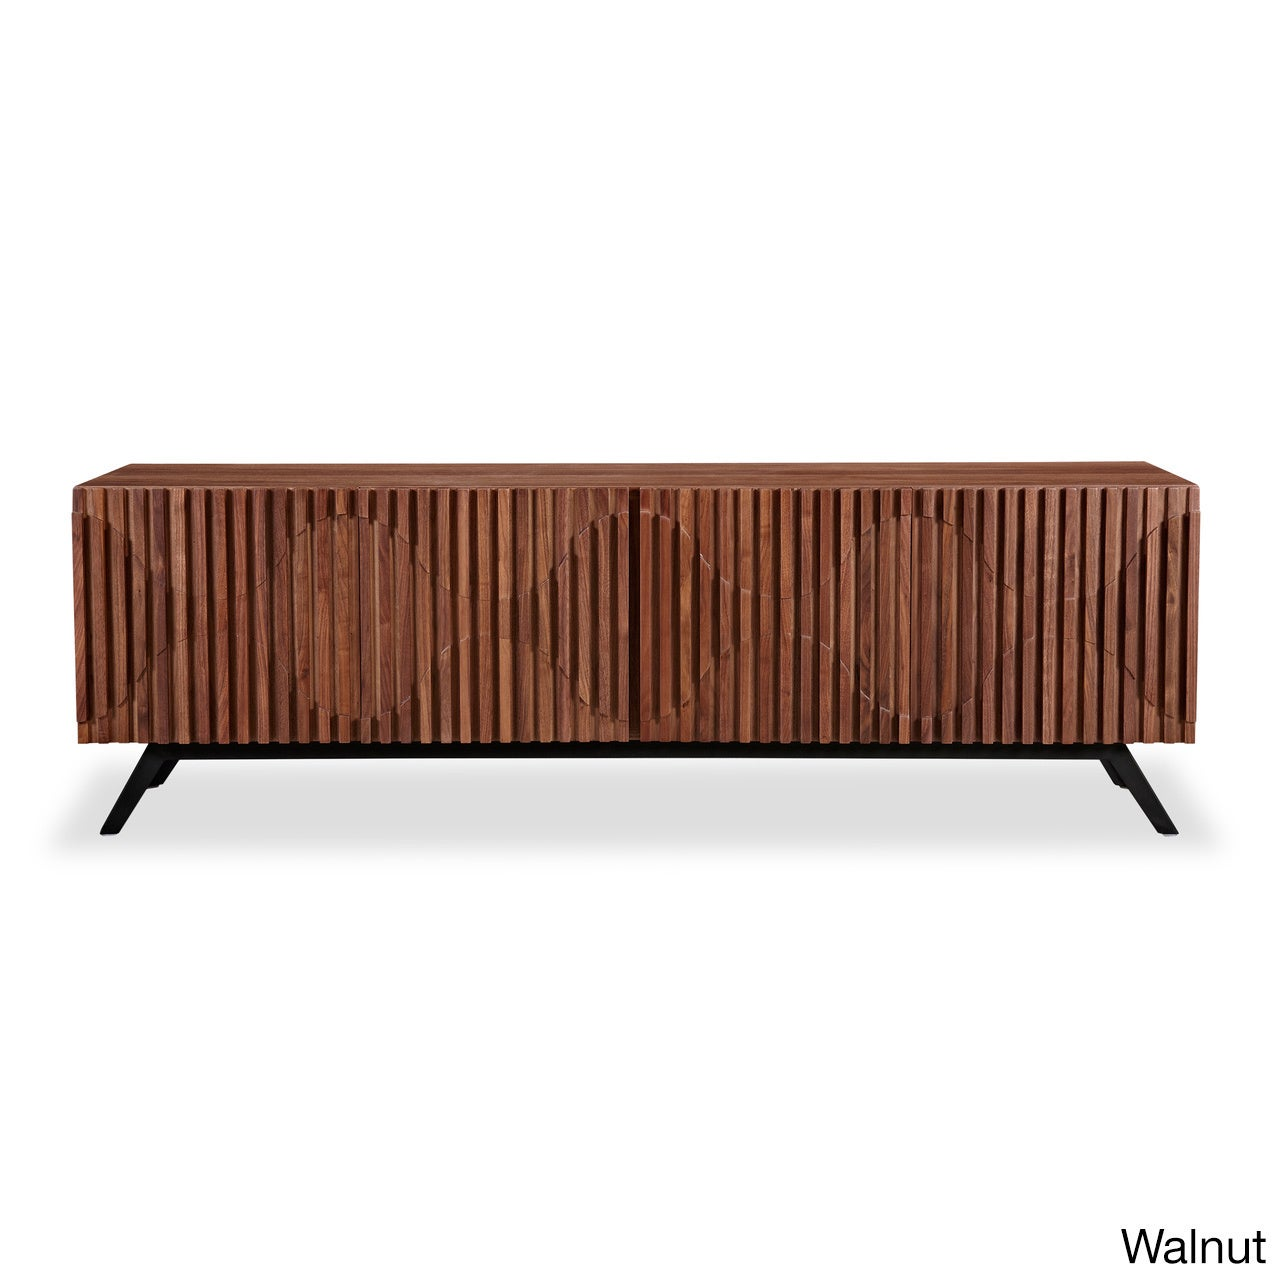 Shop Kardiel Semibreve Mid Century Modern Credenza   Free Shipping Today    Overstock.com   12747405